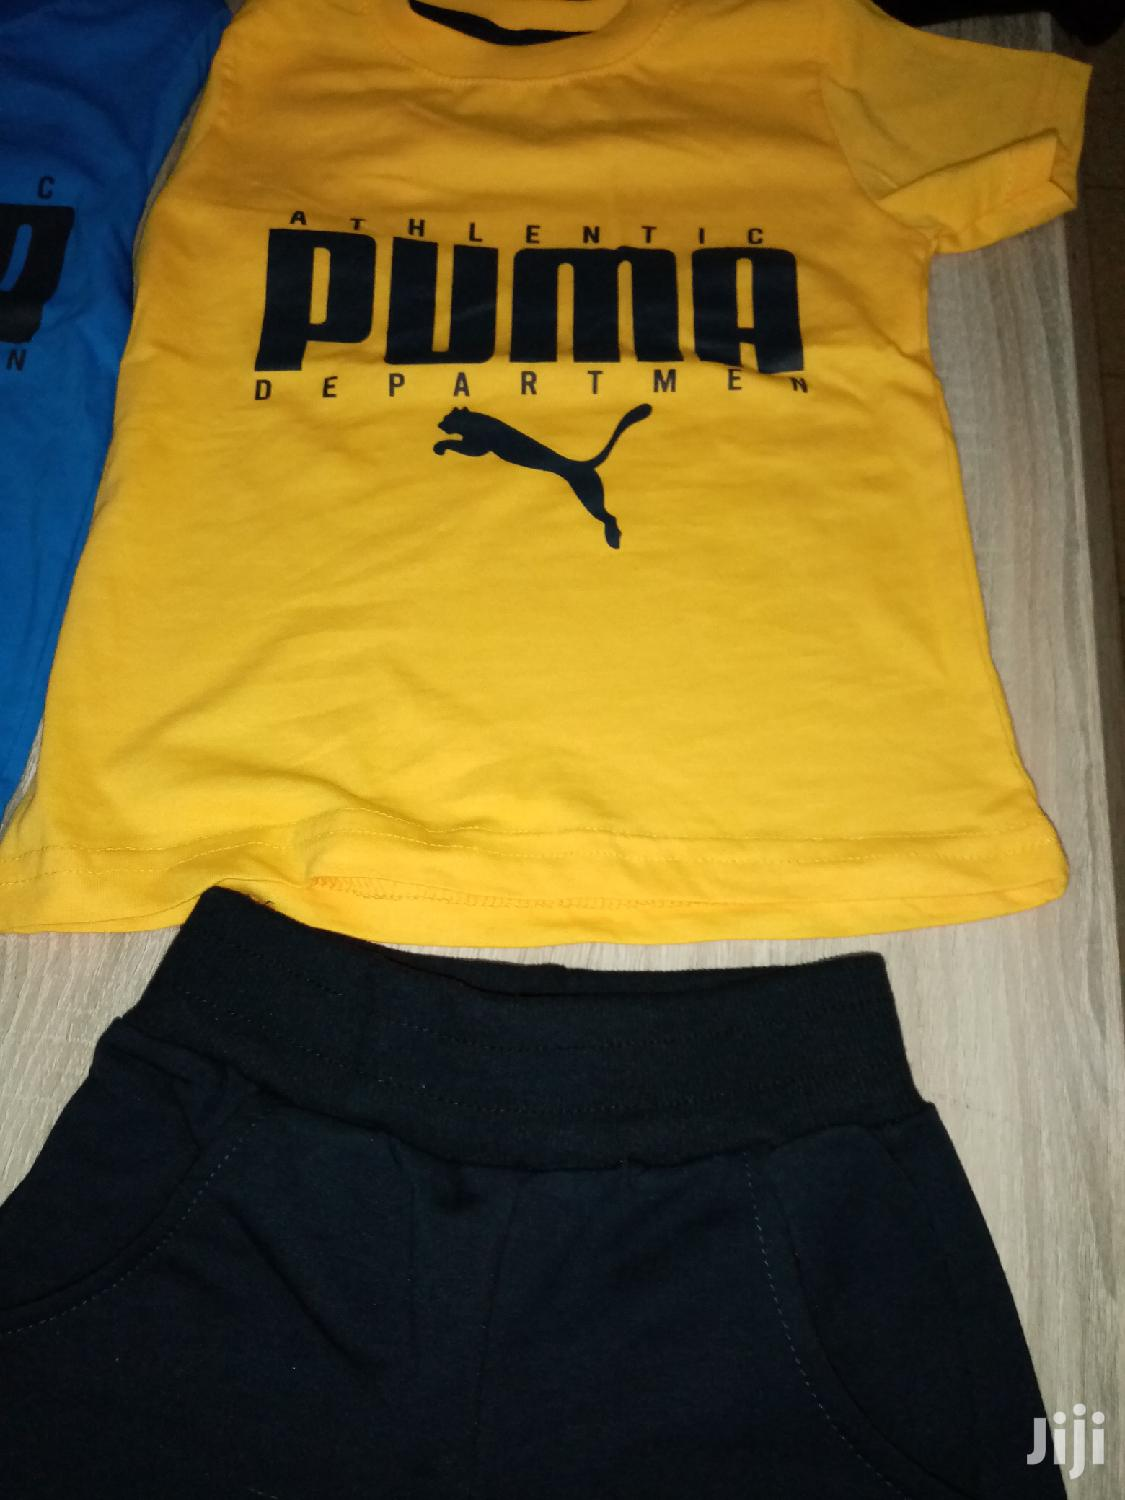 Best Price in the Market Adidas, Puma Short Outfits + | Children's Clothing for sale in Pangani, Nairobi, Kenya